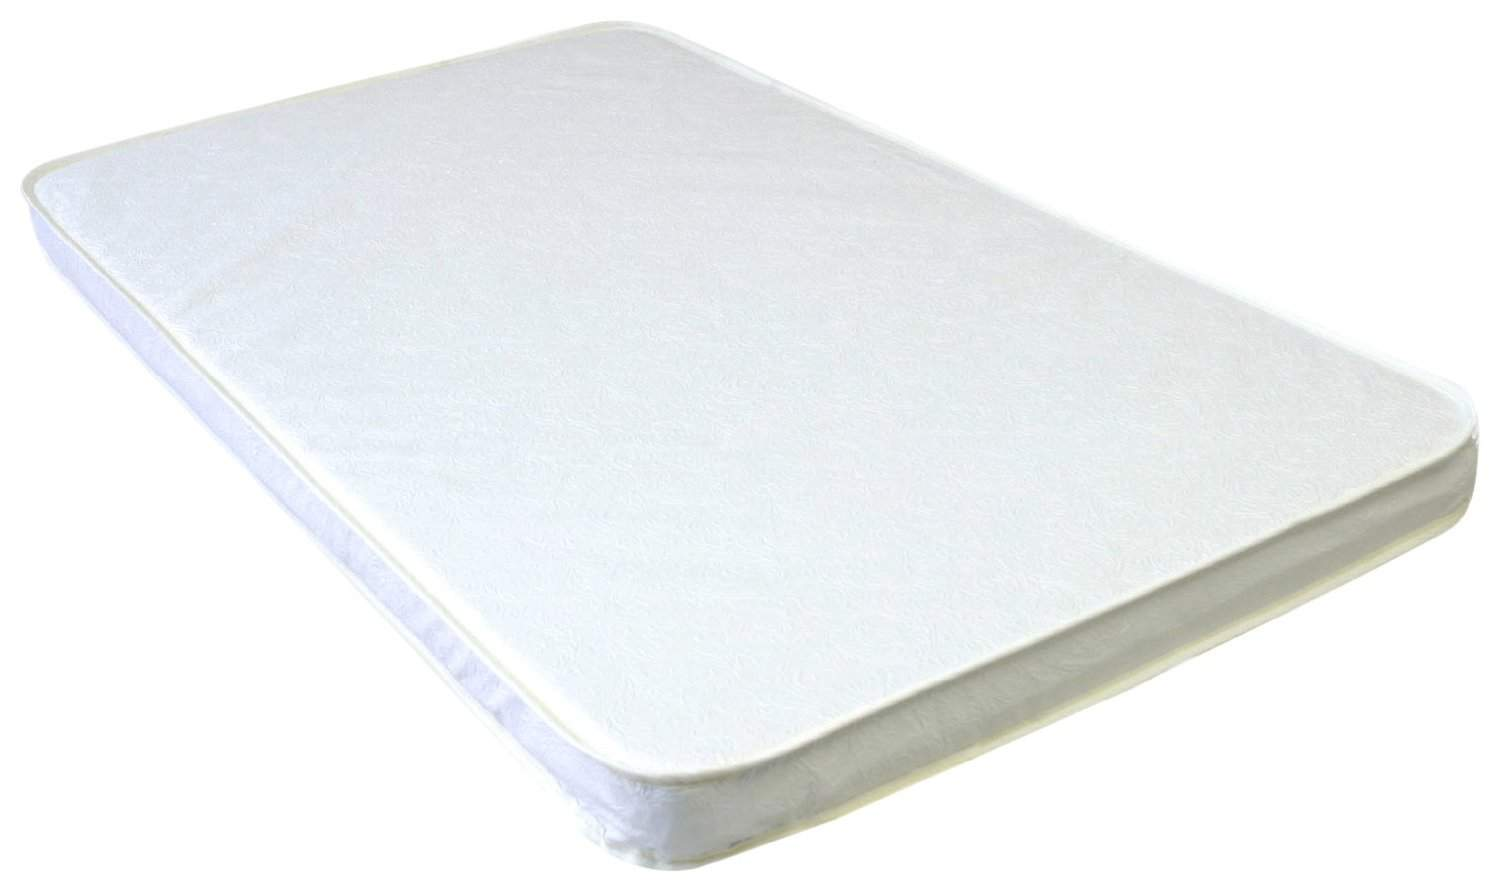 Best Pack N Play Mattress